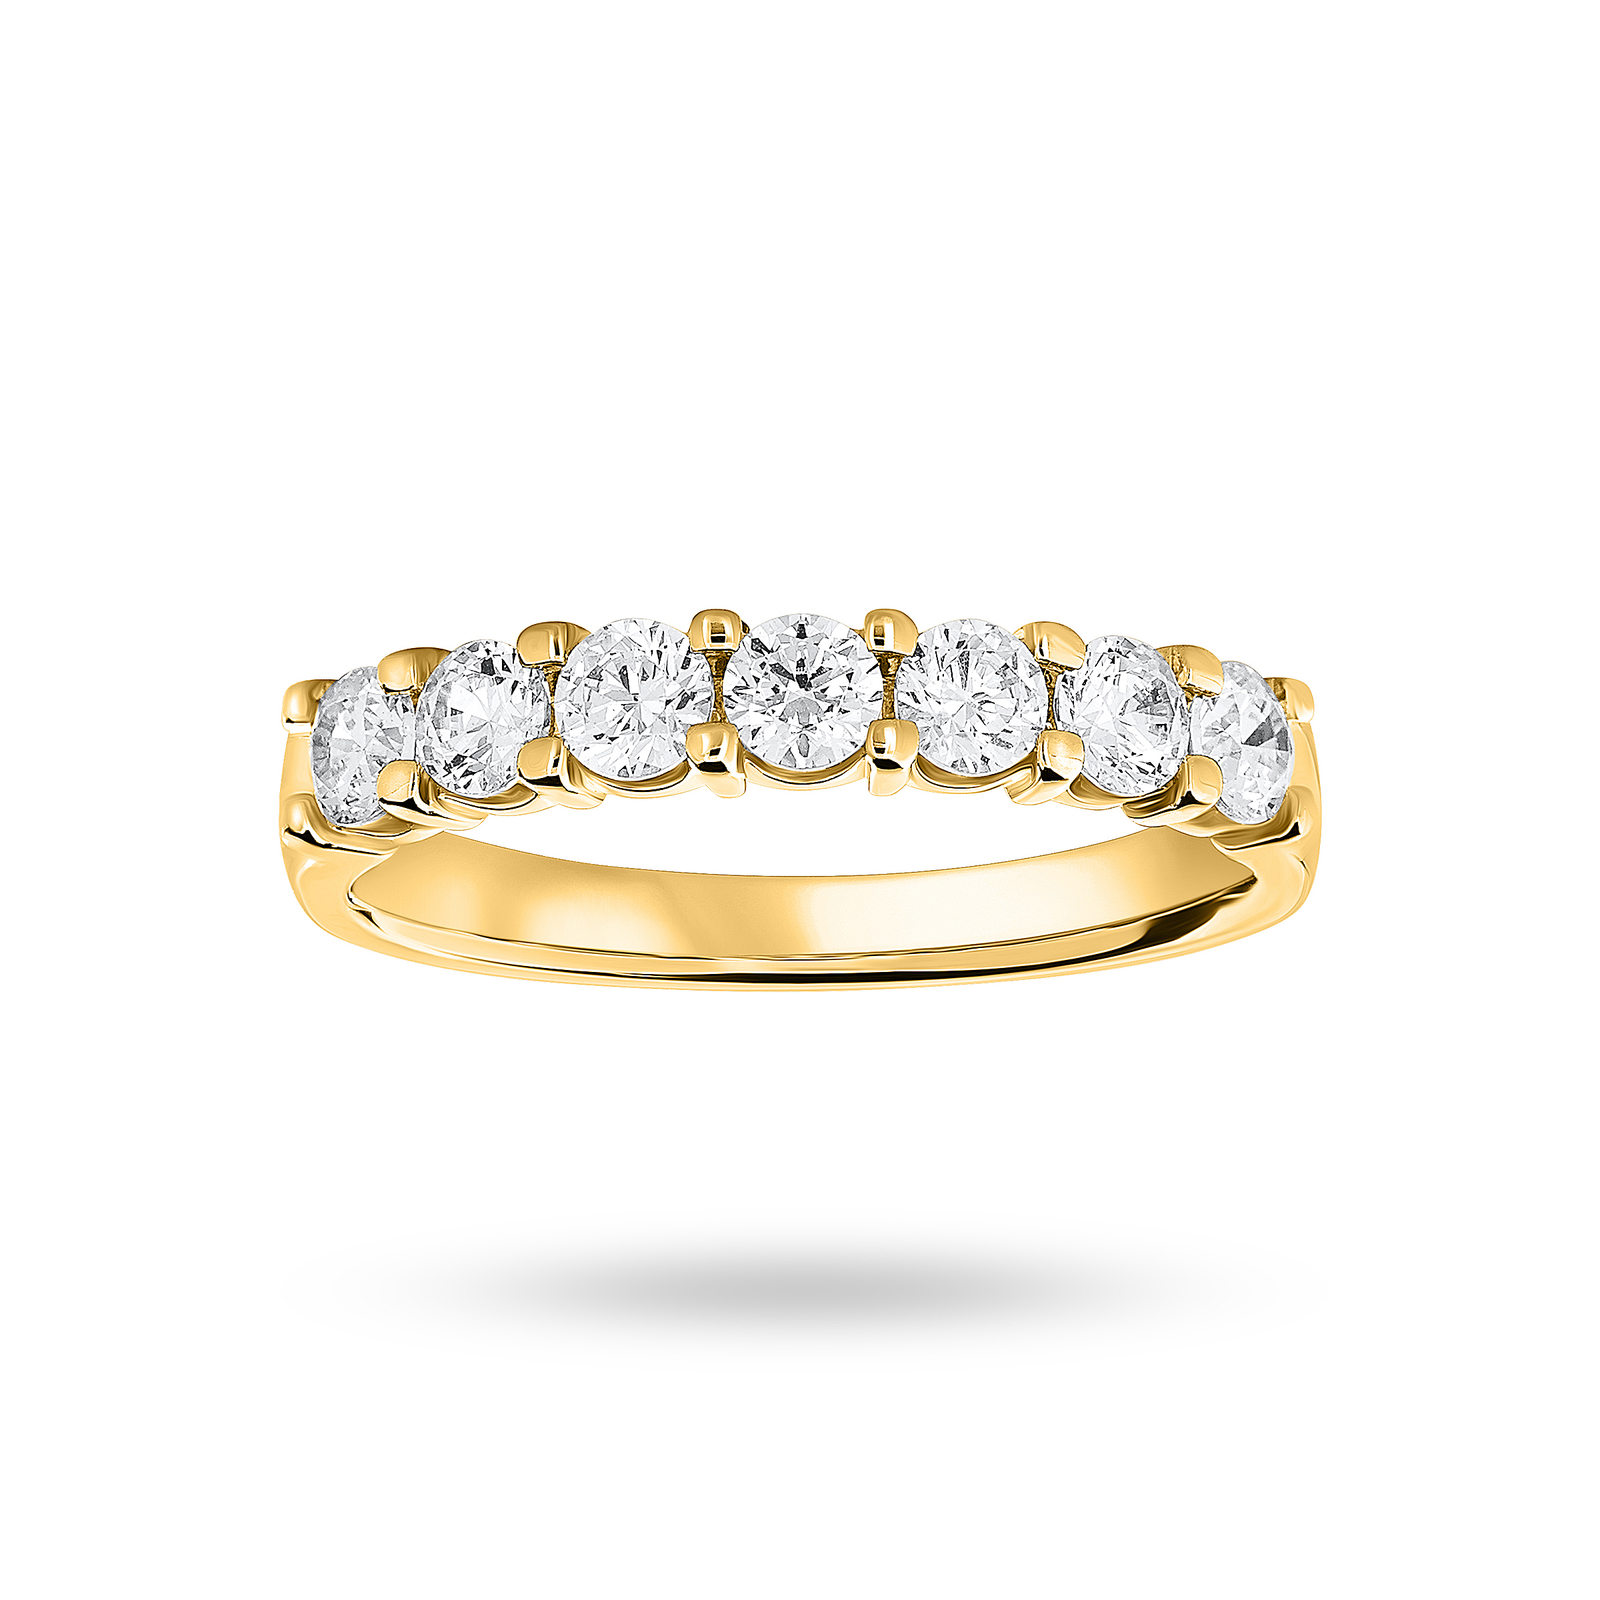 18ct Yellow Gold 0.75cttw Diamondl Half Eternity Ring